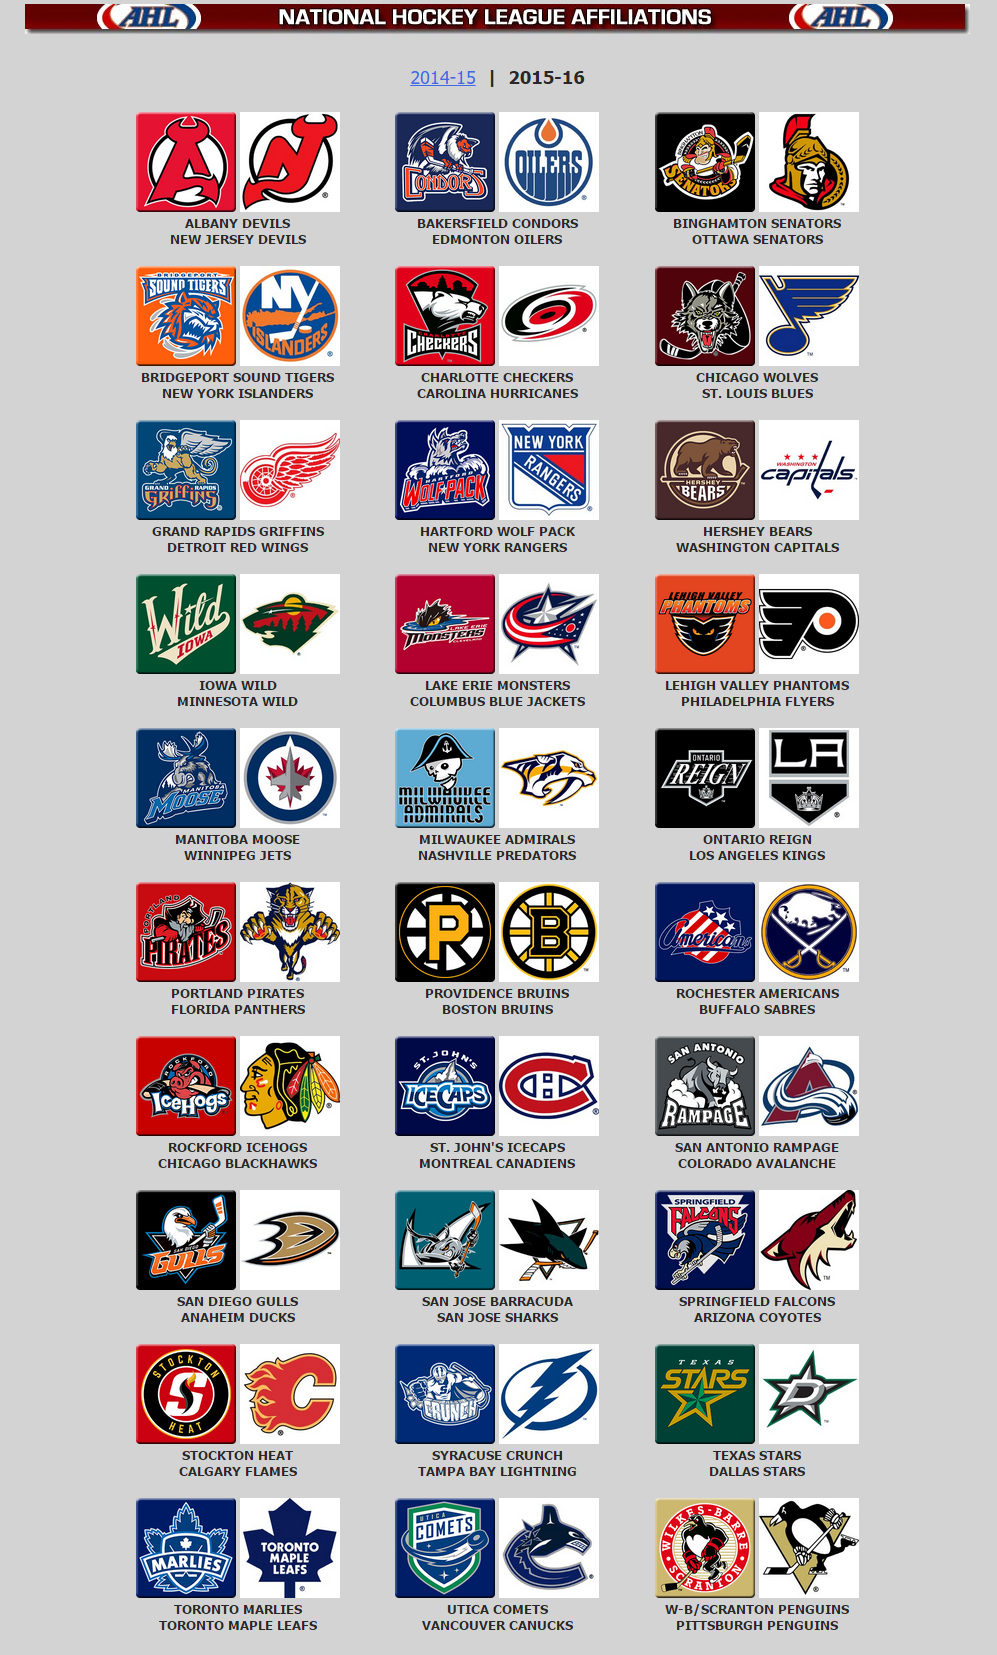 2015-2016 AHL/NHL Affiliations | Hockey